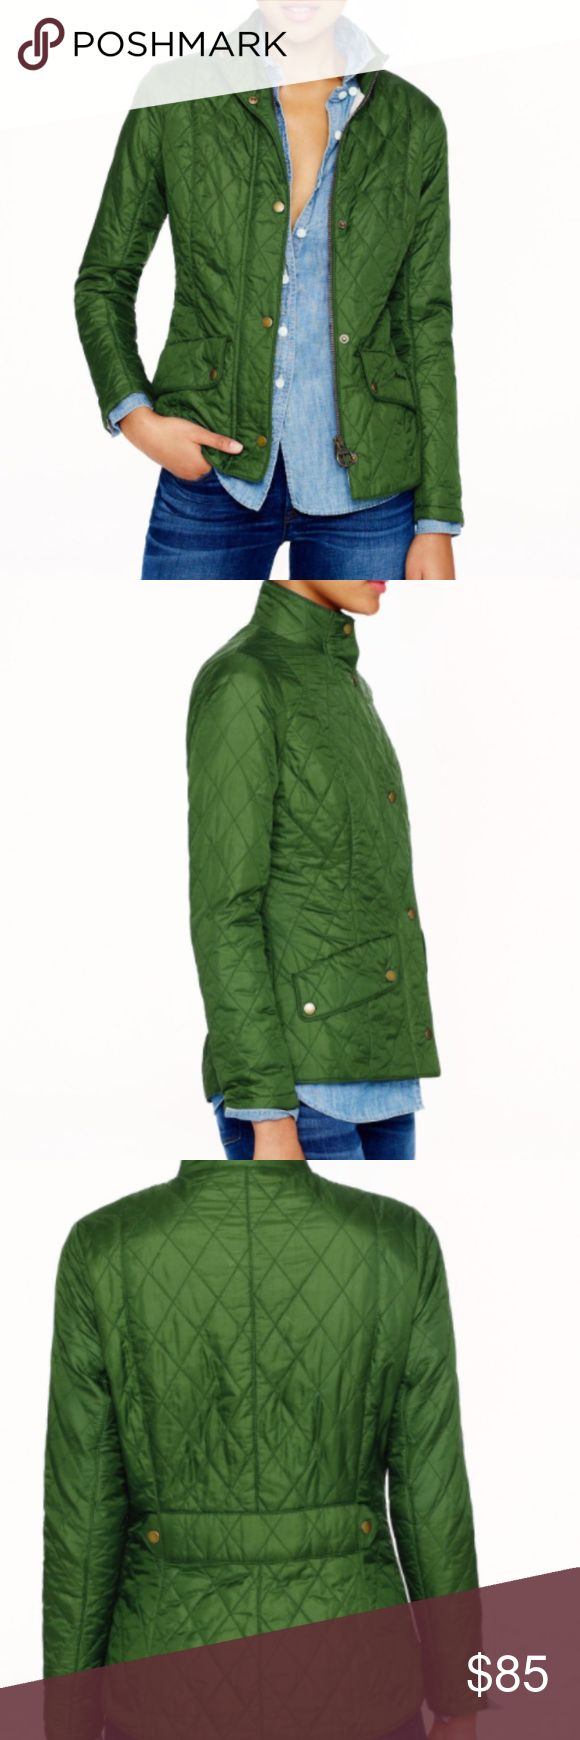 Barbour Flyweight Cavalry Quilted Jacket Bright Green Barbour Quilted Cavalry jacket. Perfect layer for spring and cool summer nights! Only worn a couple times. Barbour Jackets & Coats